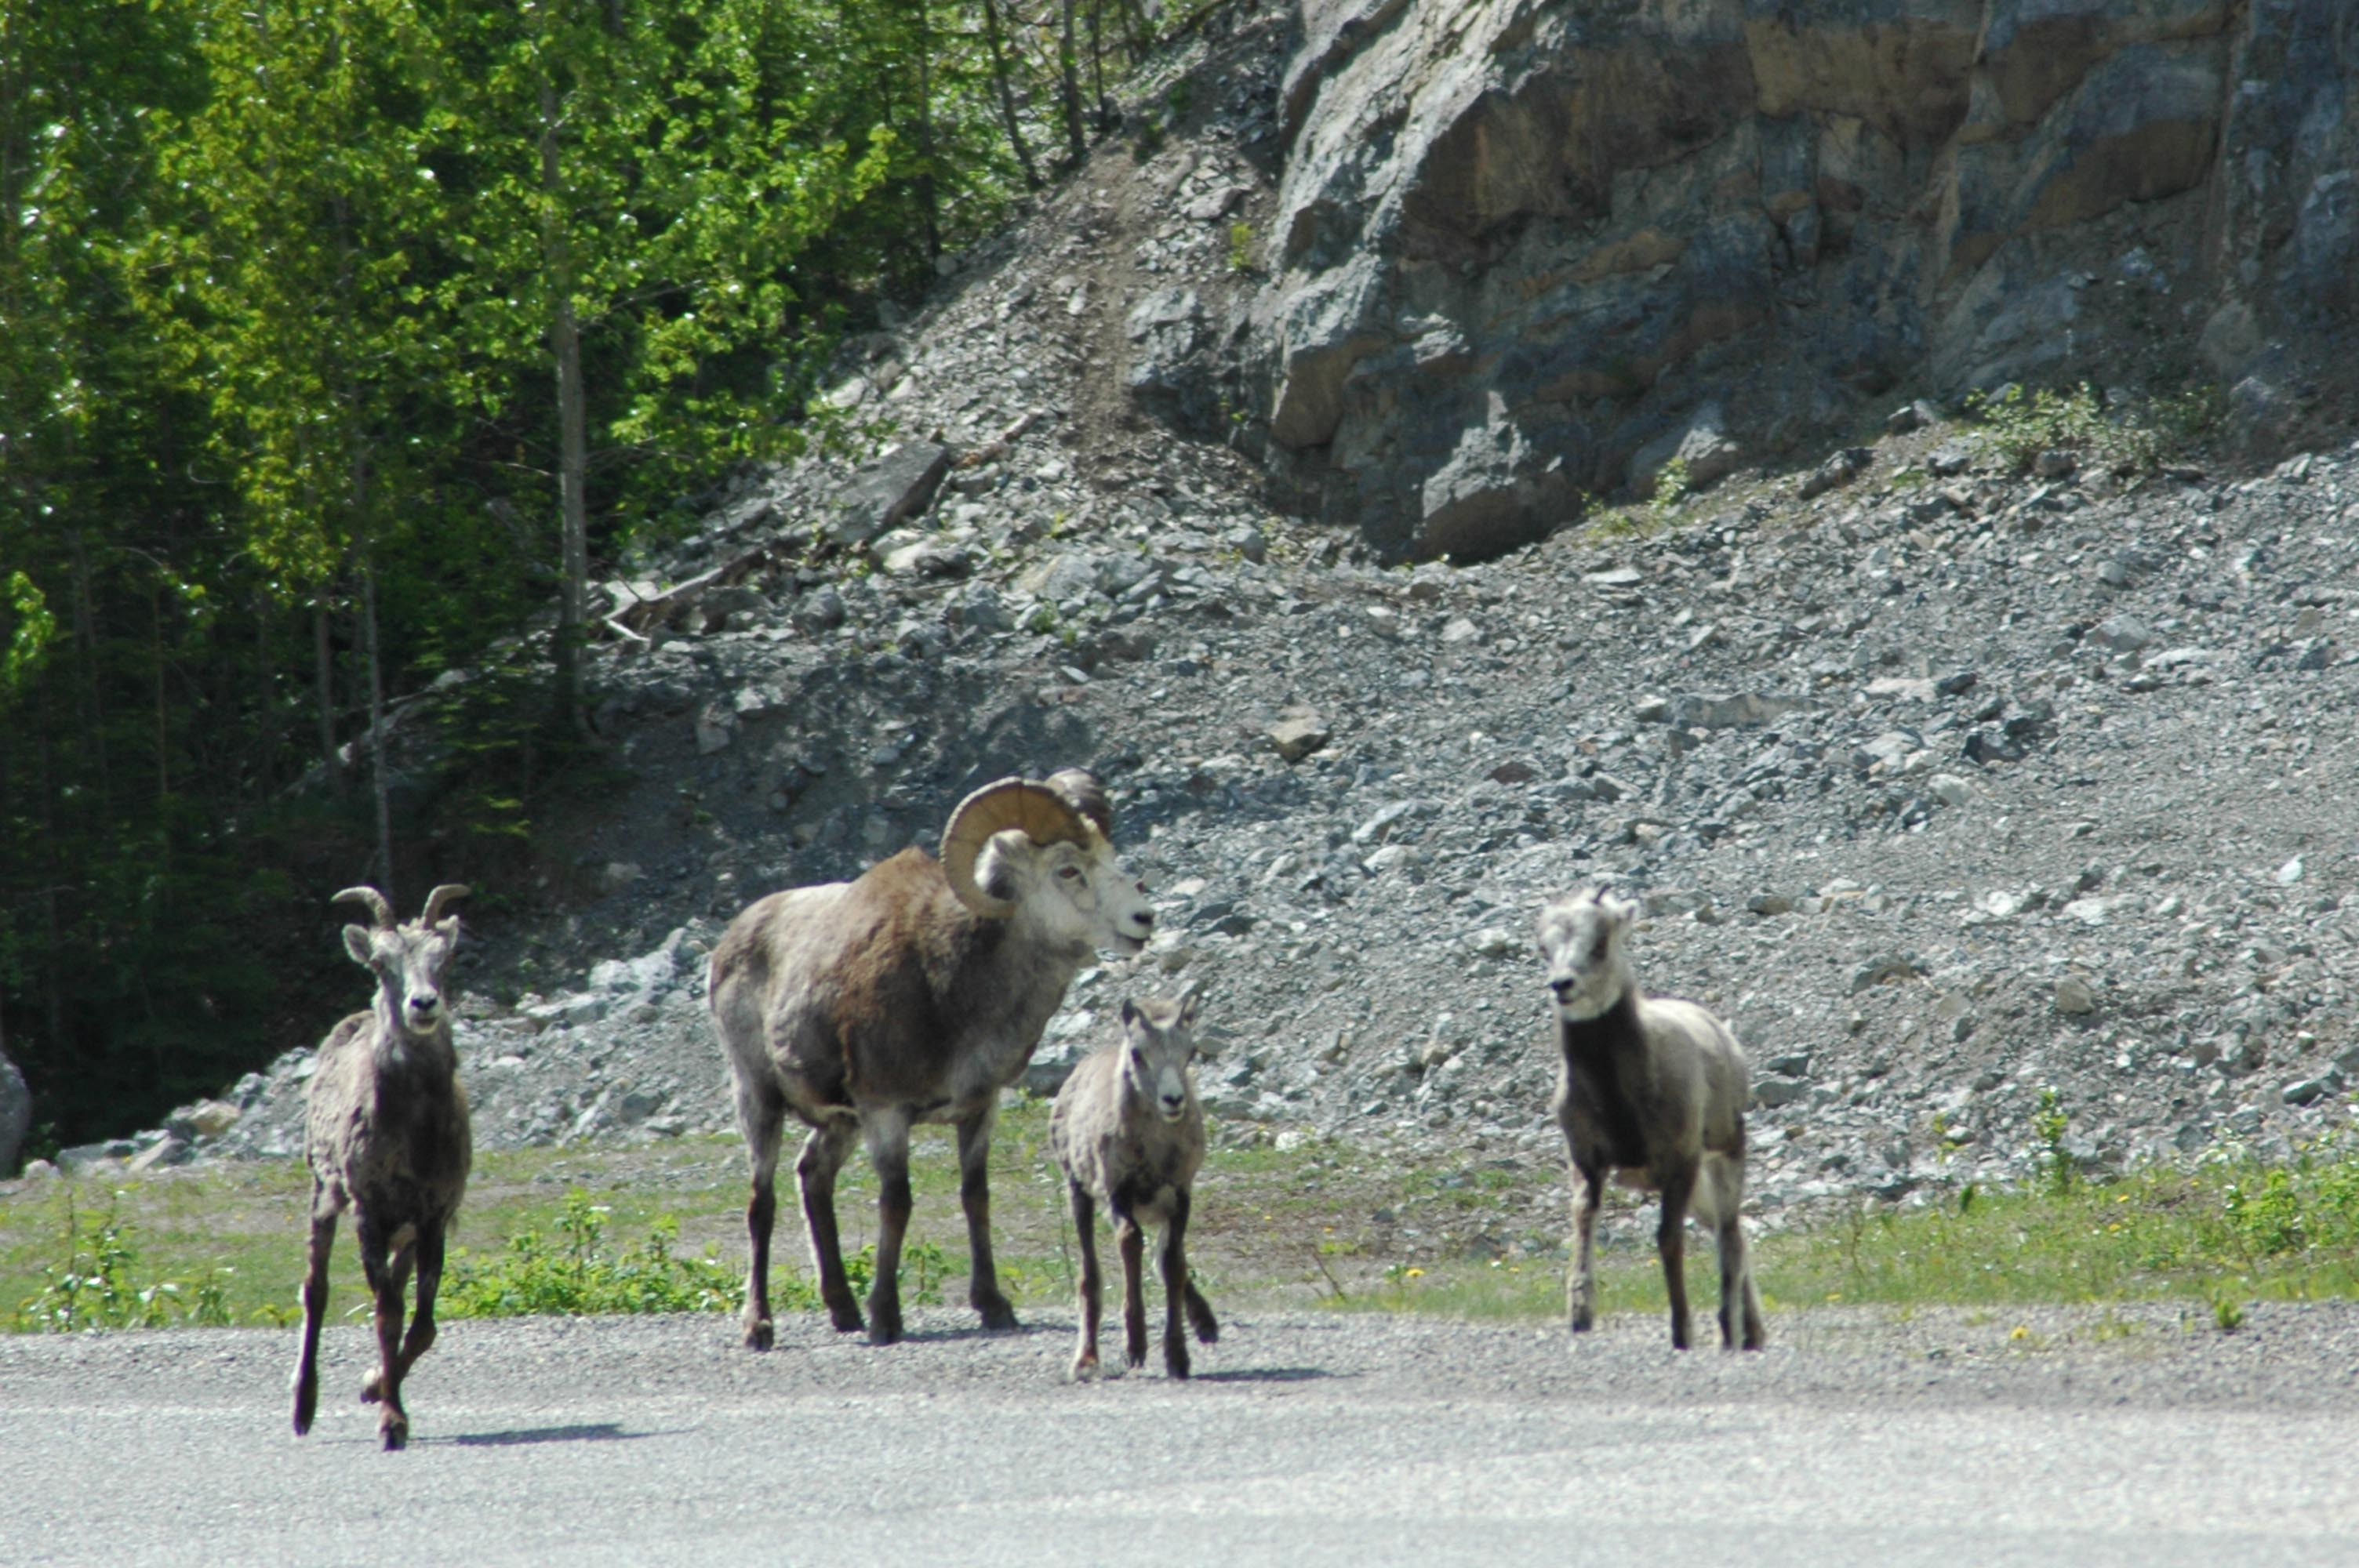 Wild life along the road - Stone Sheep